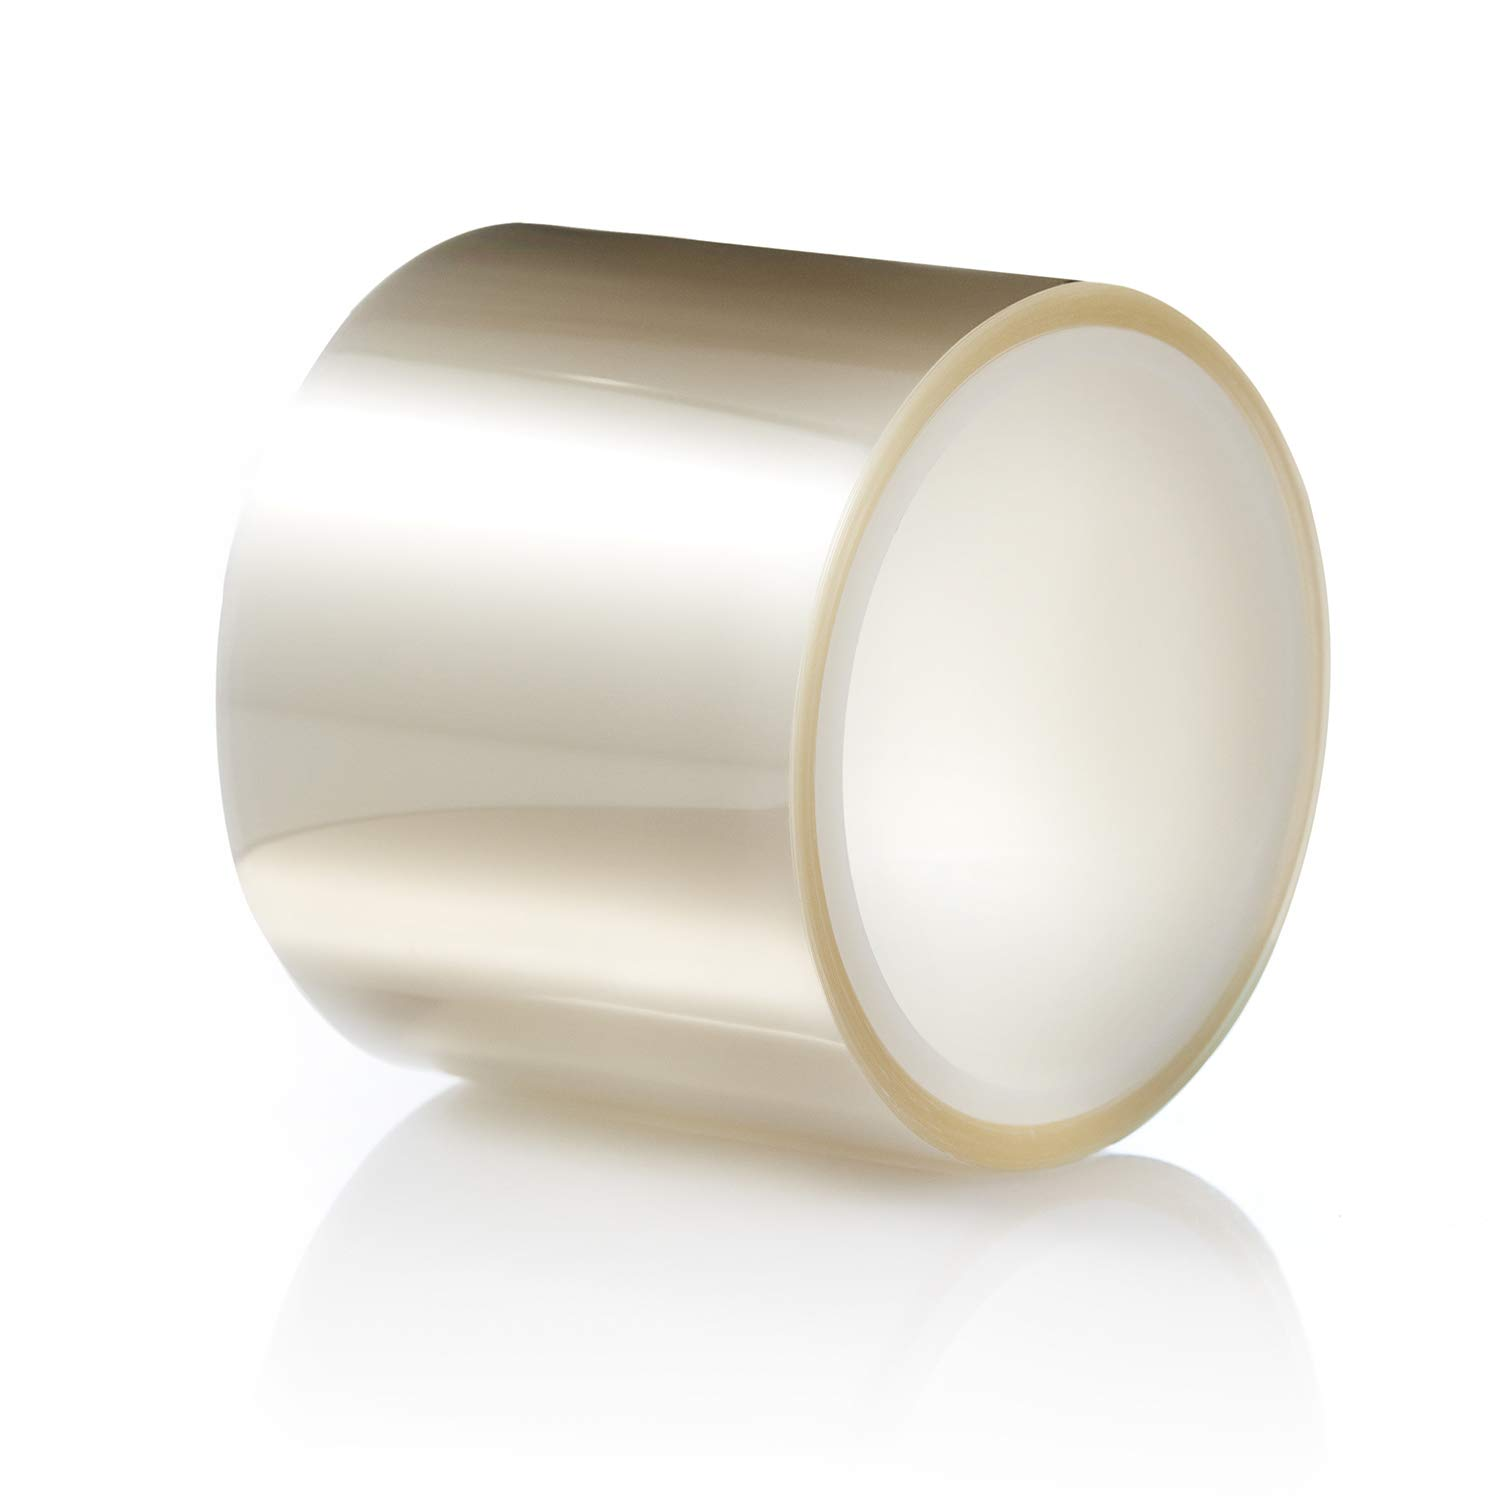 TIERRAFILM Clear Acetate Roll 3 inch High - Cake Collar for Chocolate and Cake Decorating - Used by Top Pastry Chefs (3'' x 96 feet 125 micron)